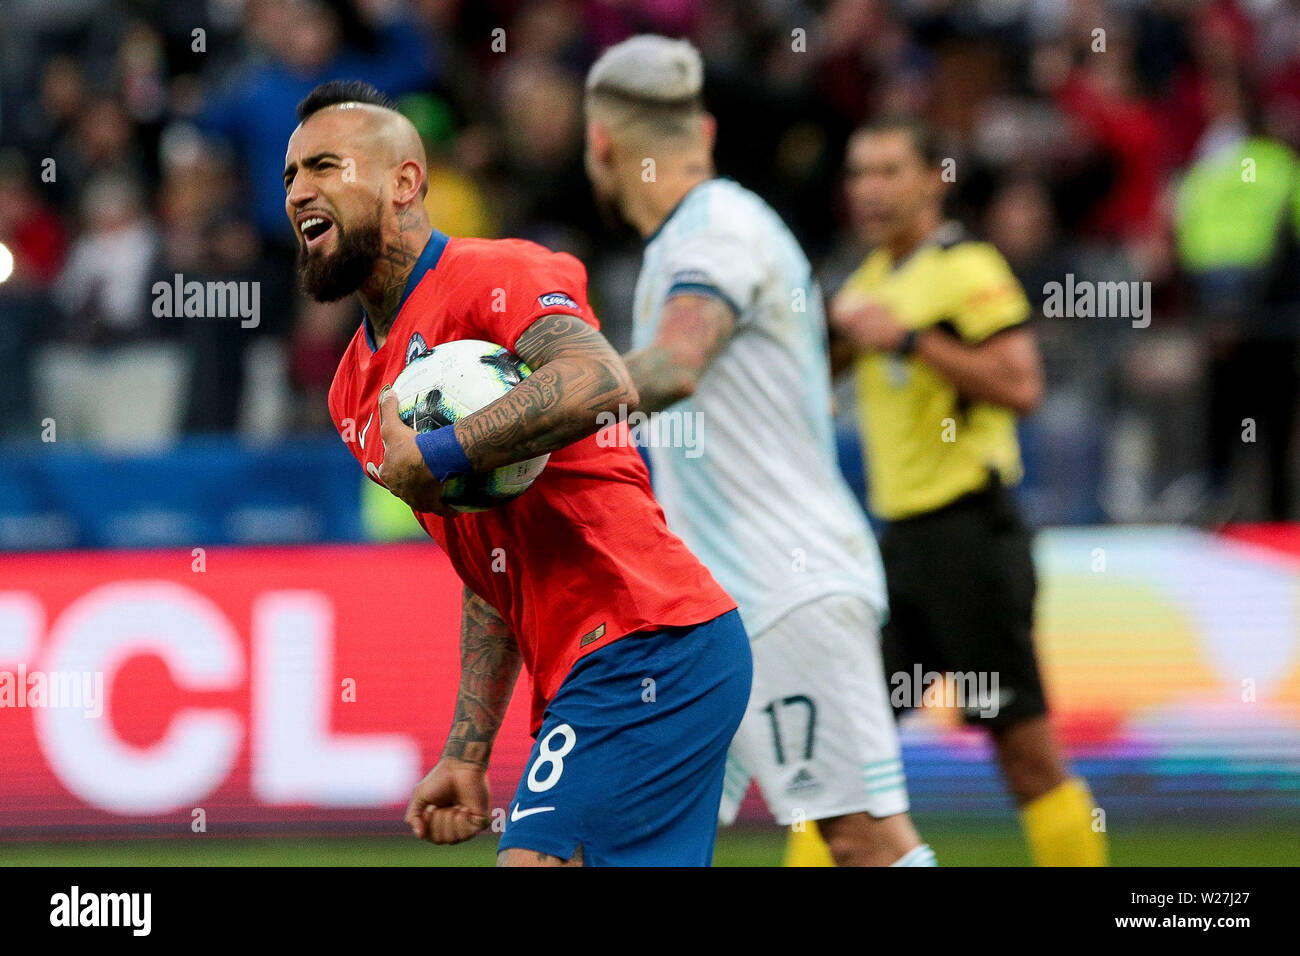 6th July 2019, Arena Corinthians Stadium, Sao Paulo, Brazil; Copa America international football, 3rd-4th playoff final, Argentina versus Chile; Arturo Vidal of Chile celebrates his goal from the penalty spot for 2-1 in the 59th minute - Stock Image